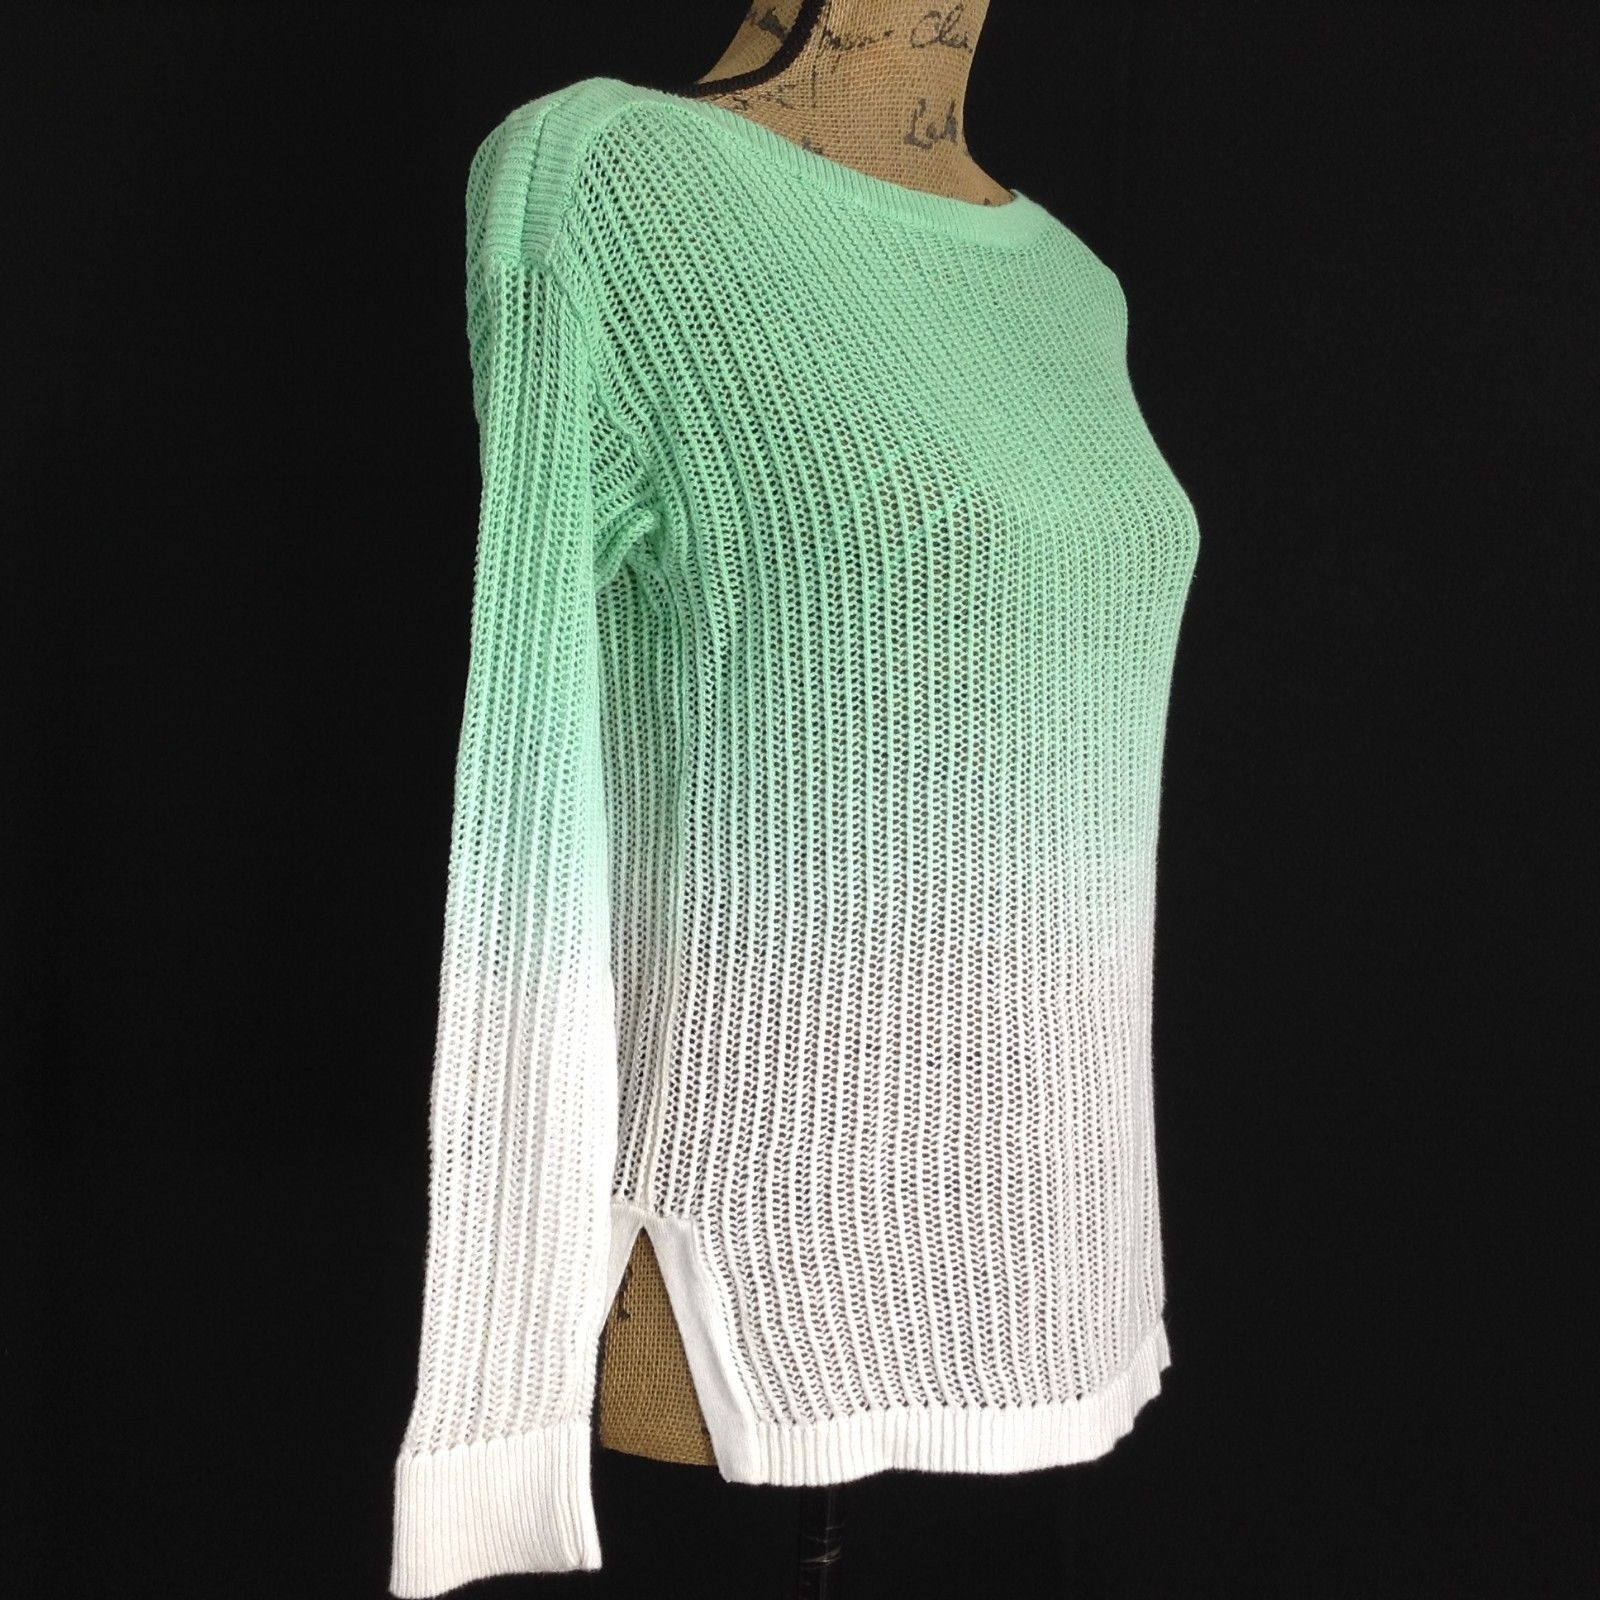 Ralph Lauren Sm S Sweater White Green Ombre Loose Knit Top Boat Neck Stretch LN